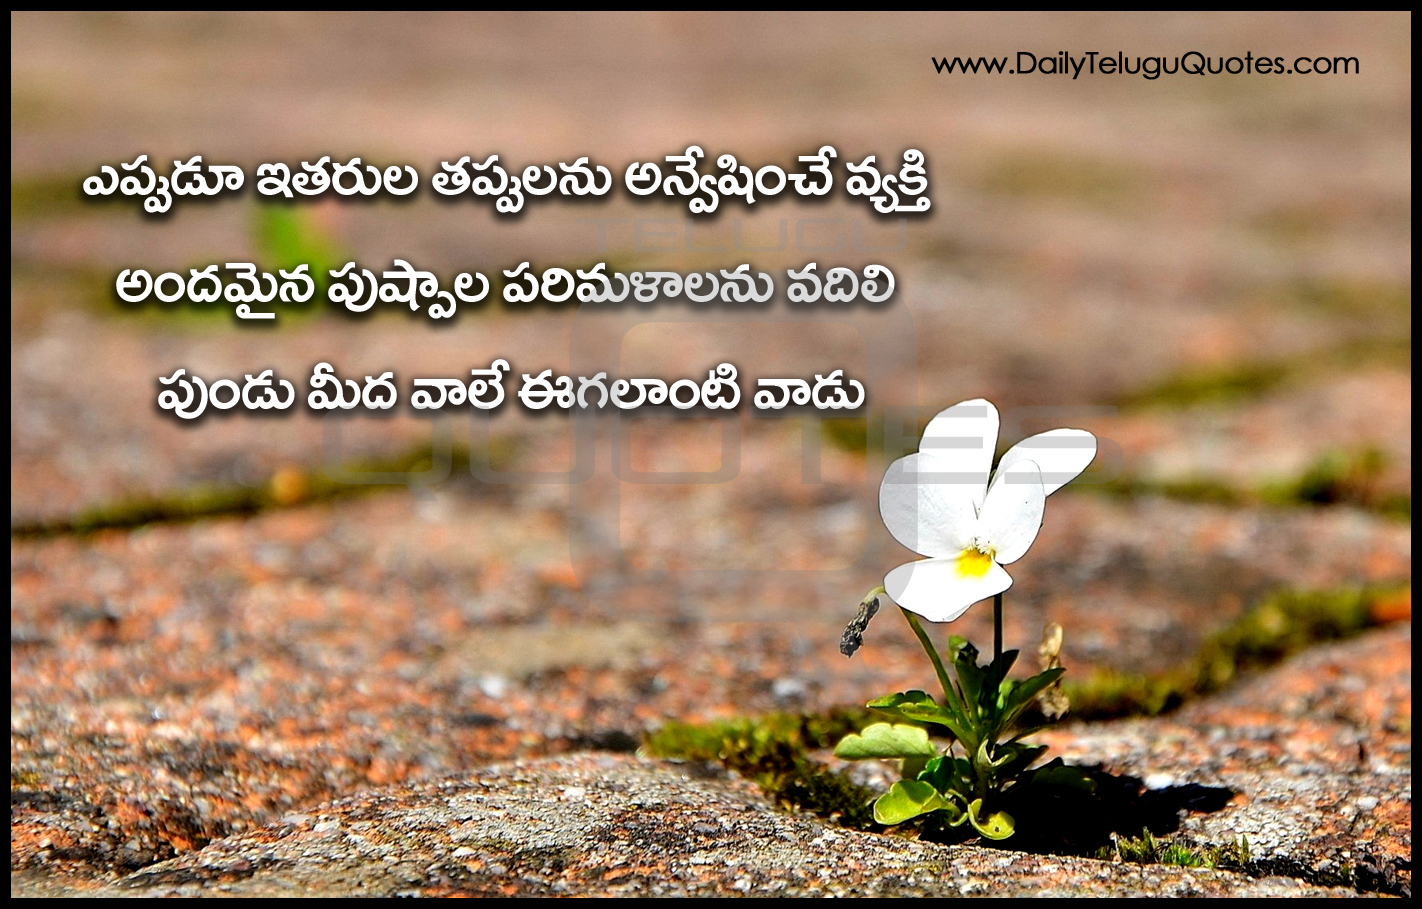 Best Telugu Quotes On Life Inspirational Thoughts And Sayings In